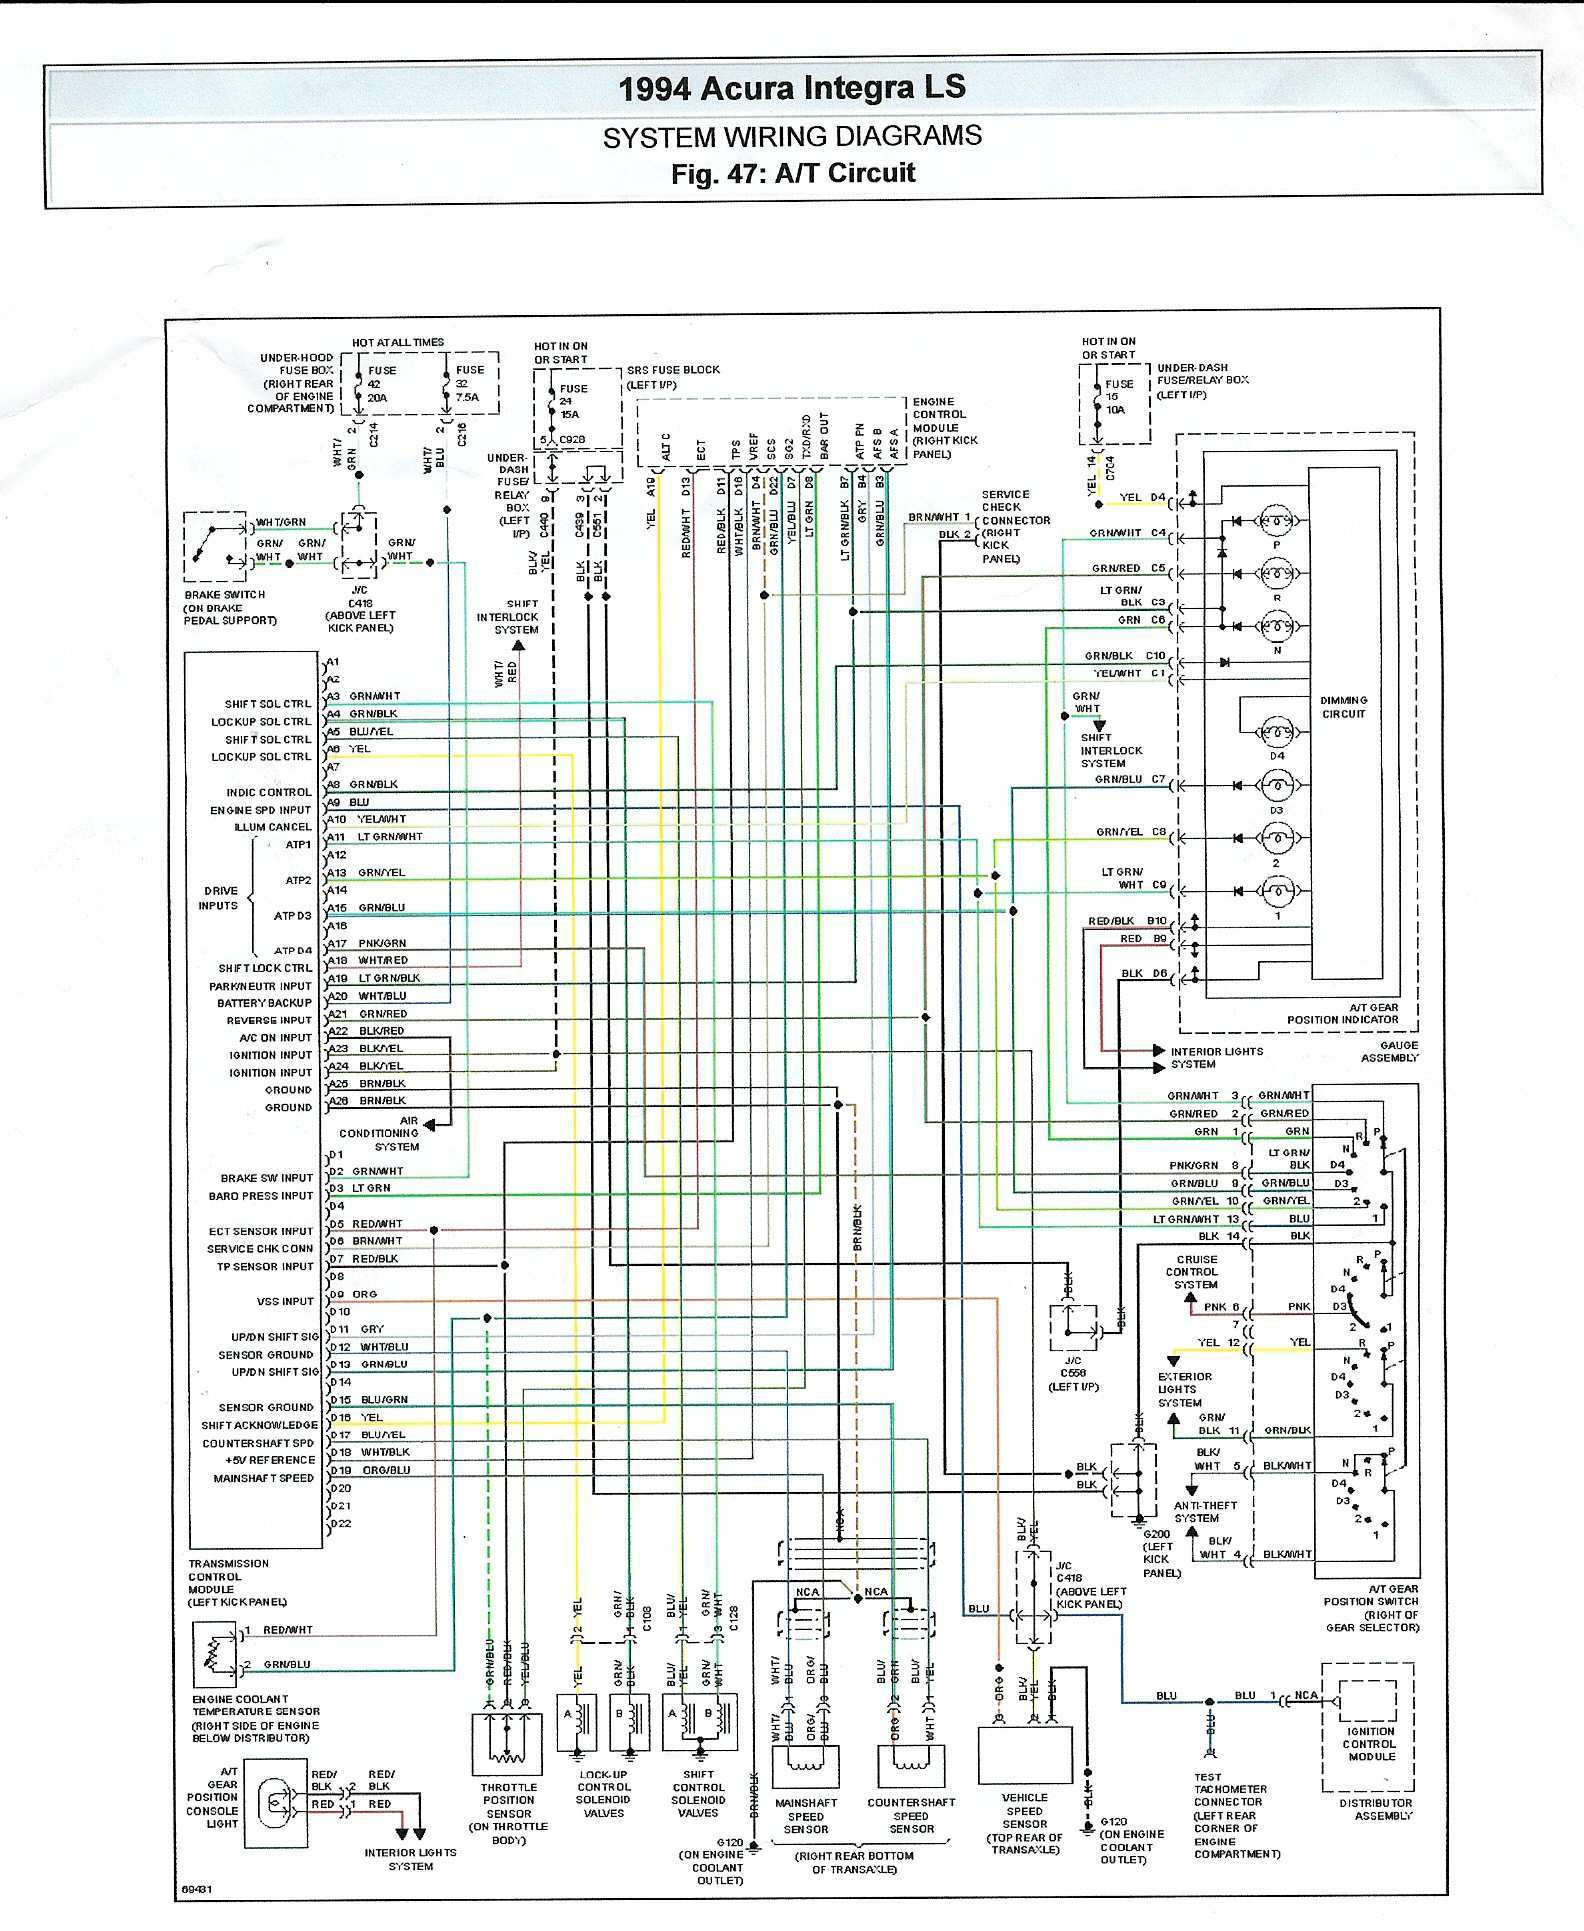 2014 honda accord wiring diagram Collection-1991 honda accord stereo wiring diagram 11-a